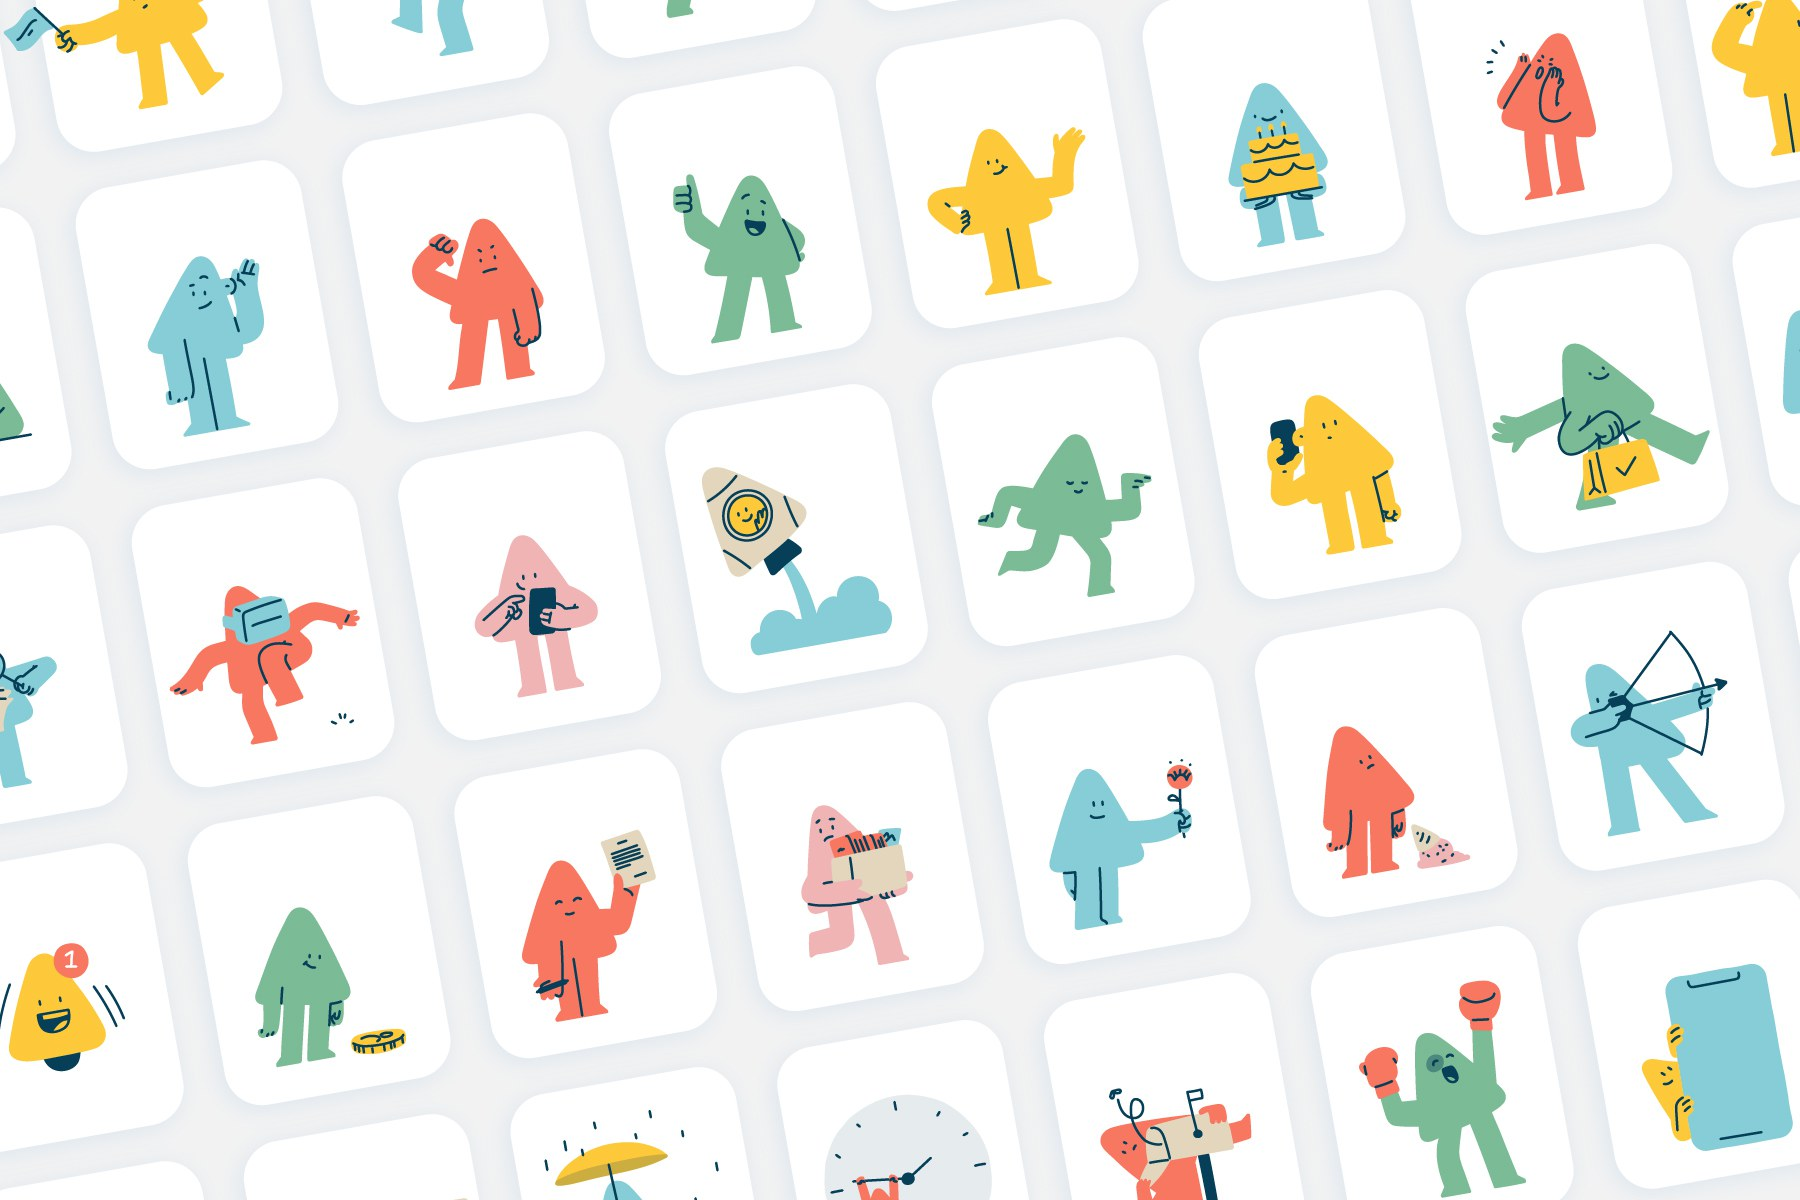 55 Playful Triangle Illustrations